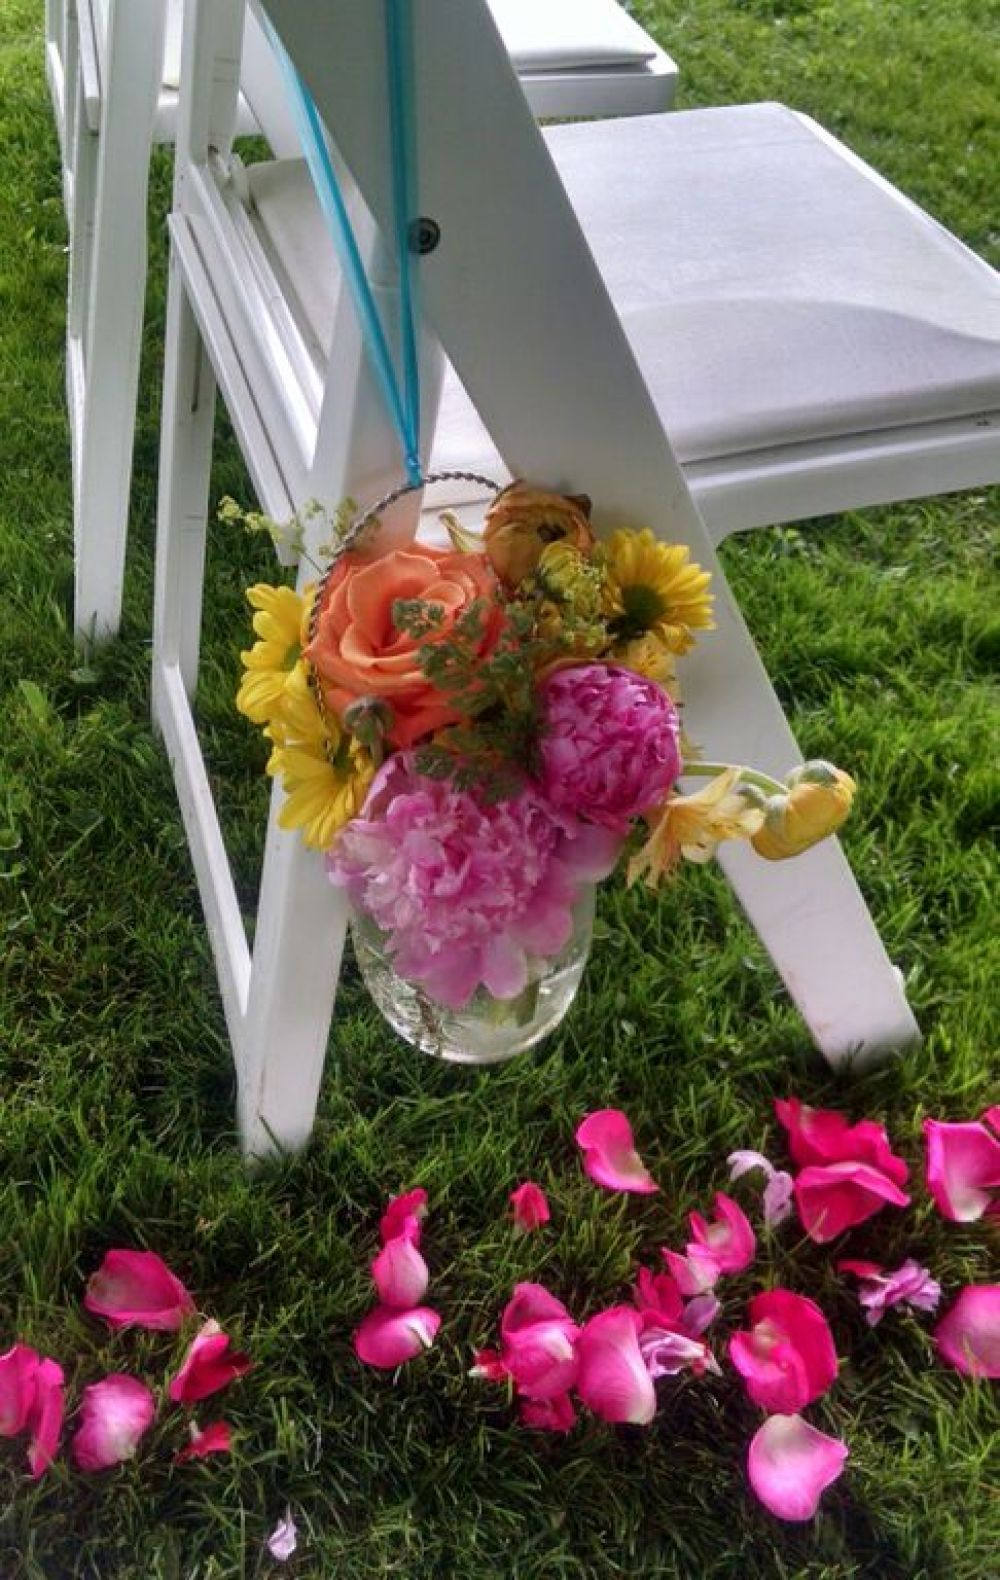 outdoor weddings near akron ohio%0A Flower Delivery in Cuyahoga Falls   Florist in Akron OH   Dietz Falls  Florist